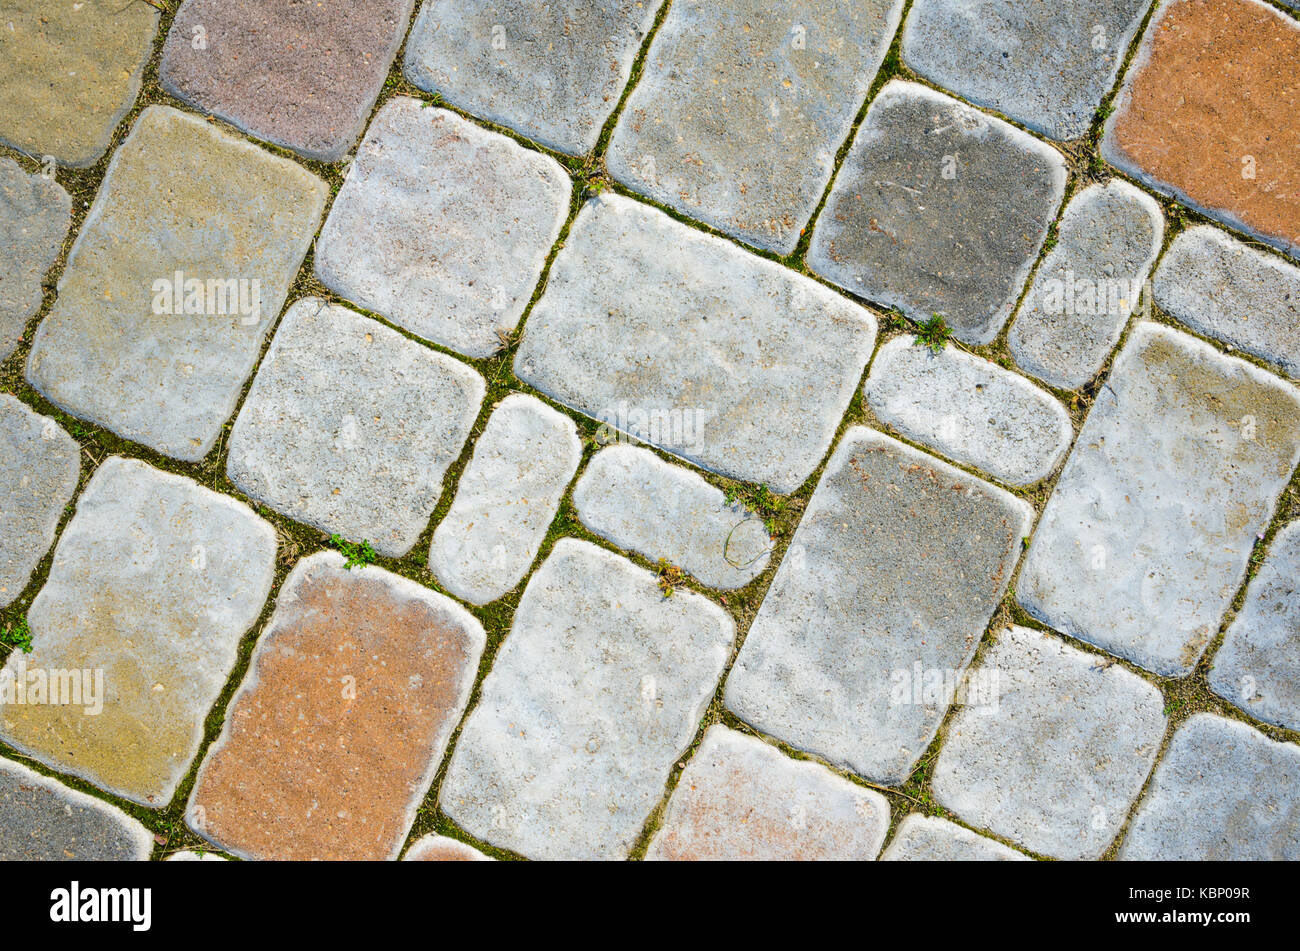 Colorful Concrete Paving Texture Background Stock Photos ...